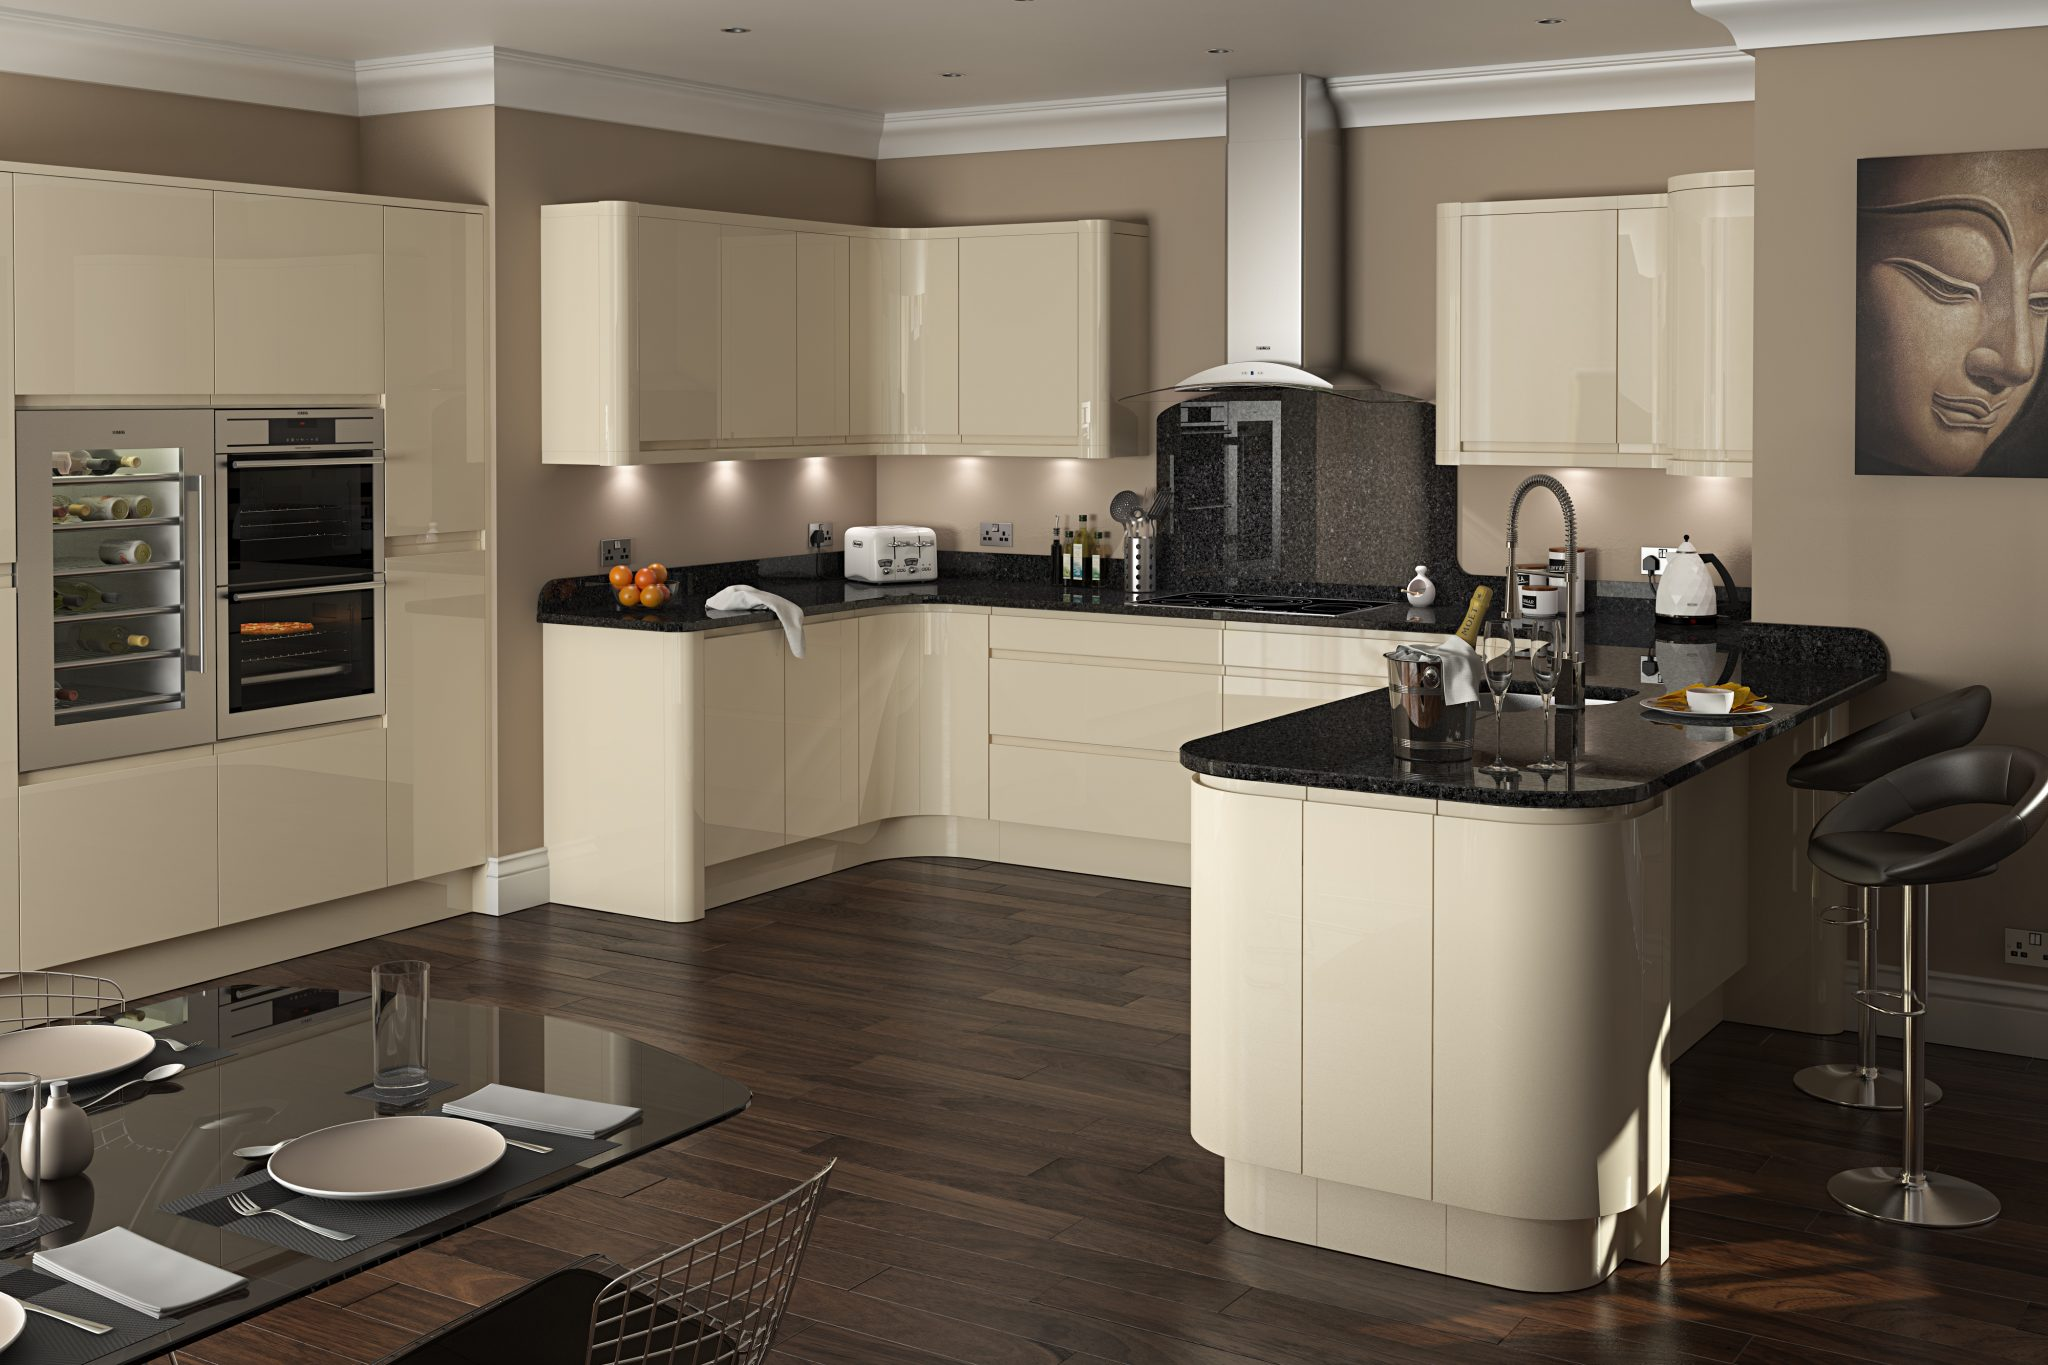 Kitchen design kitchens wirral bespoke luxury designs for Kitchenette designs photos